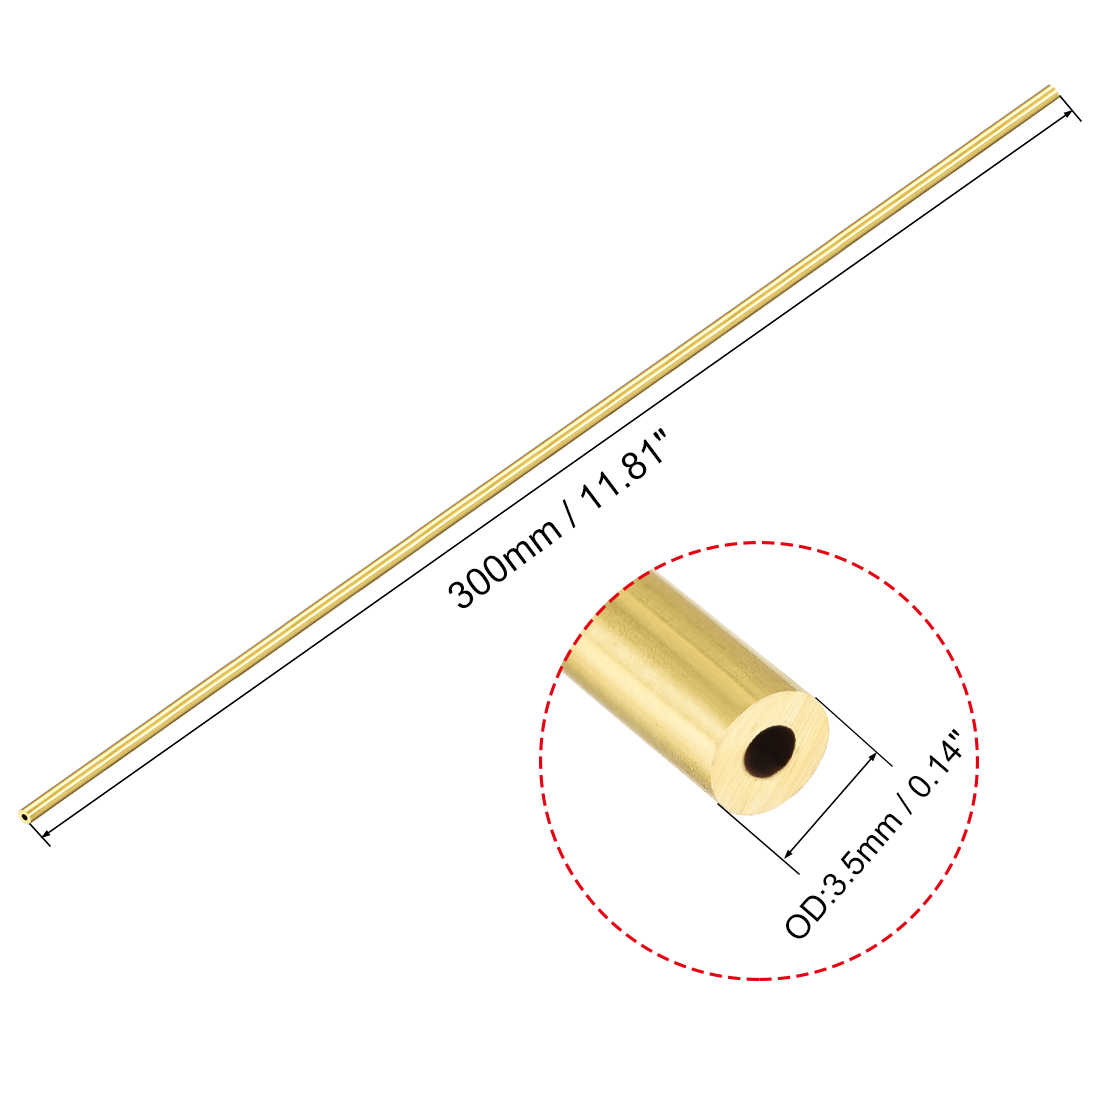 Brass Round Tube 300mm Length 7.5mm OD 0.5mm Wall Thickness Seamless Tubing 3pcs